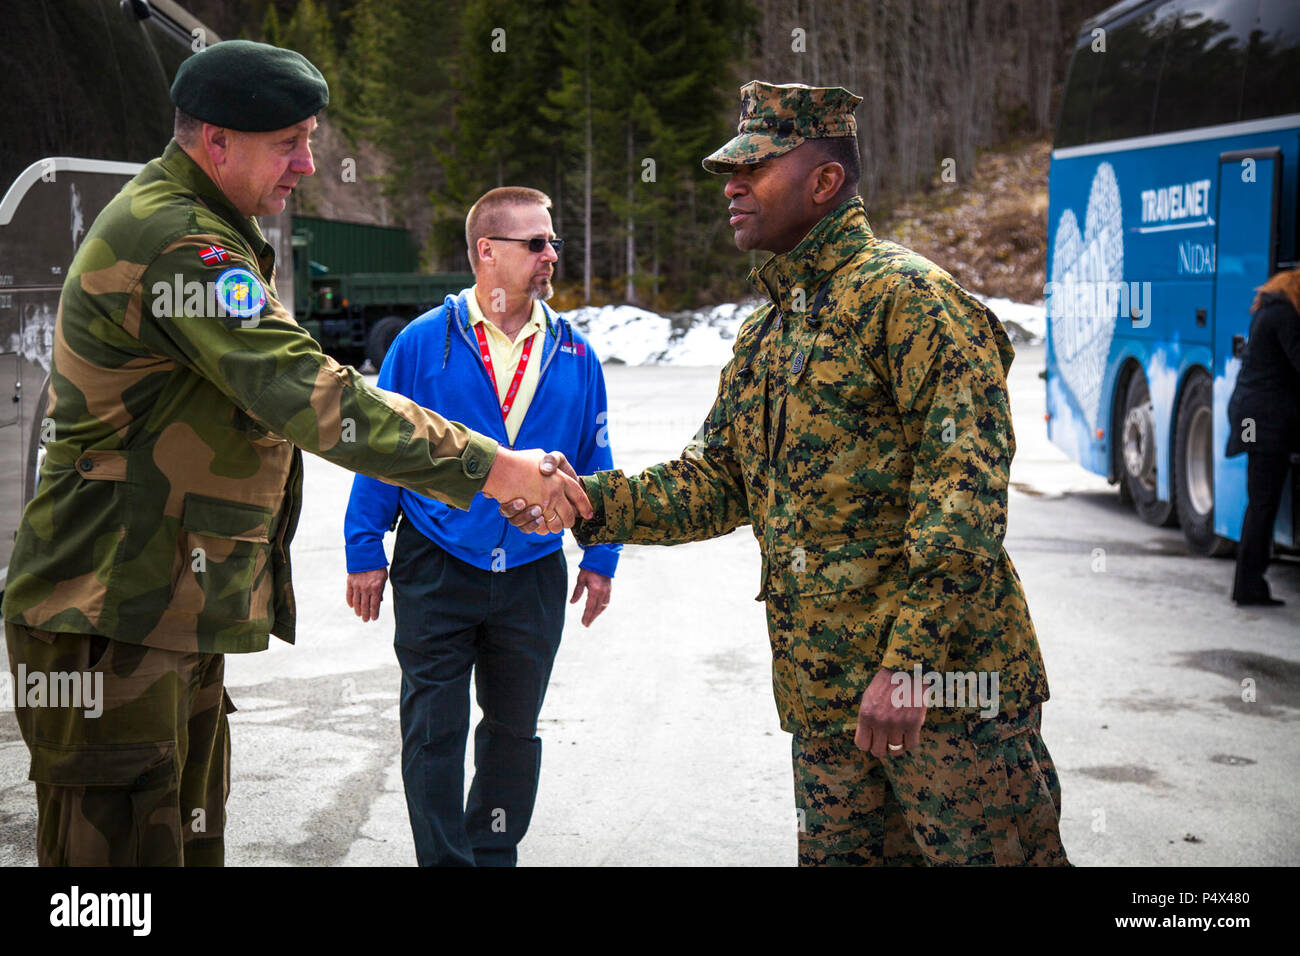 Capt. Ola Gilberg, Frigaard Cave Manager, left, and U.S. Marine Corps Sgt. Maj. Christopher Robinson, right, U.S. Marine Corps Forces Command Sergeant Major, shake hands after a tour of a cave site in Norway, May 9, 2017. The tour was given to senior Marines to show them the workings of Marine Corps Prepositioning Program Norway (MCPP-N). MCPP-N was created to support the rapid aggregation of a flexible Marine Air Ground Task Force. Stock Photo